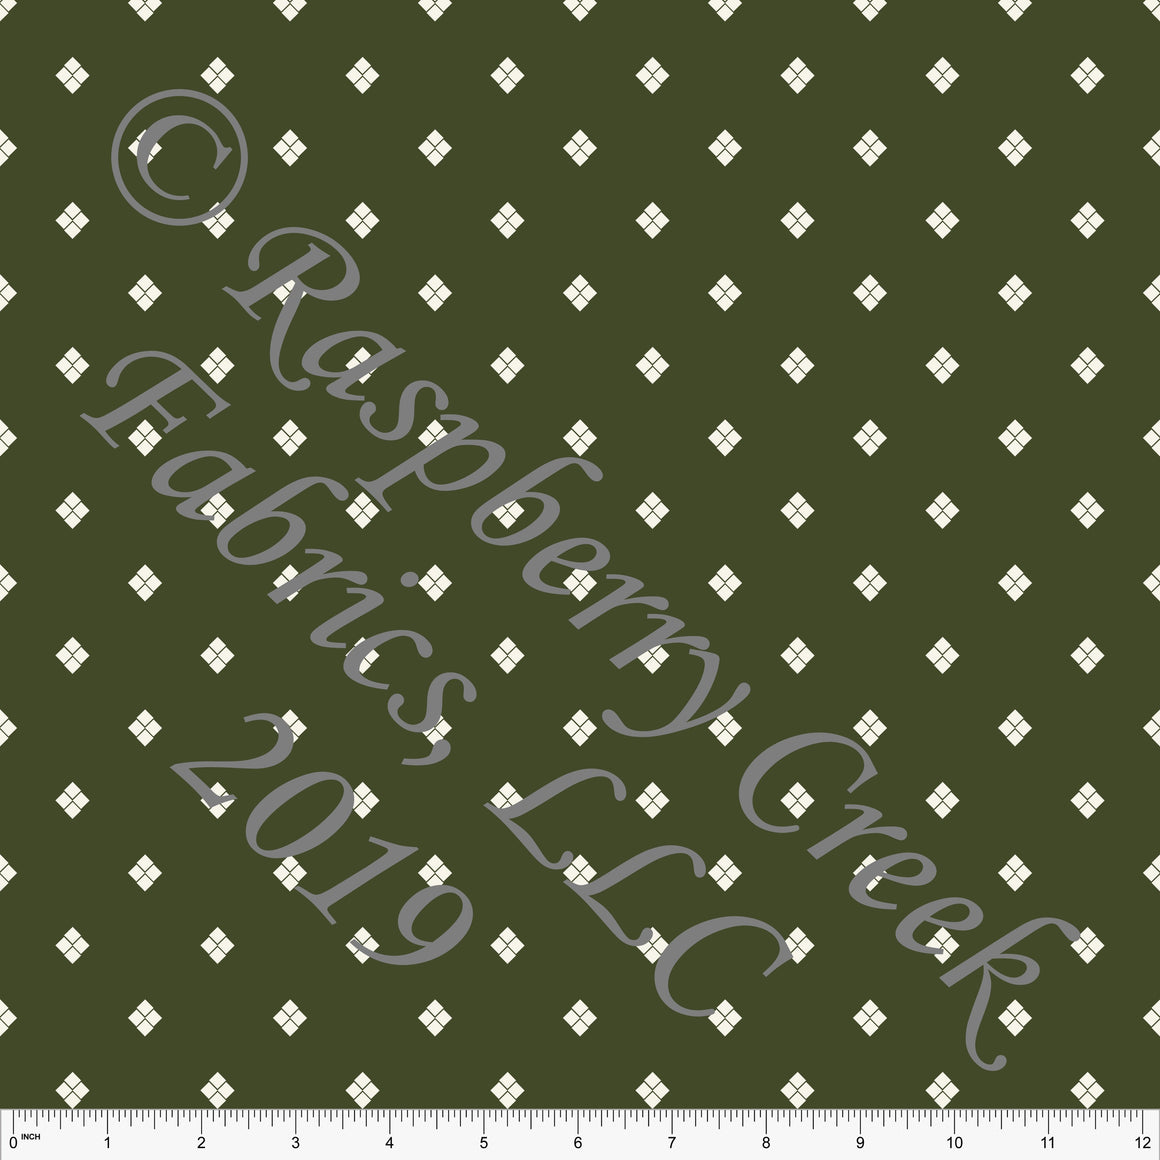 Olive Green and Cream Geometric Diamond Print Stretch Crepe, CLUB Fabrics, 1 Yard - Raspberry Creek Fabrics